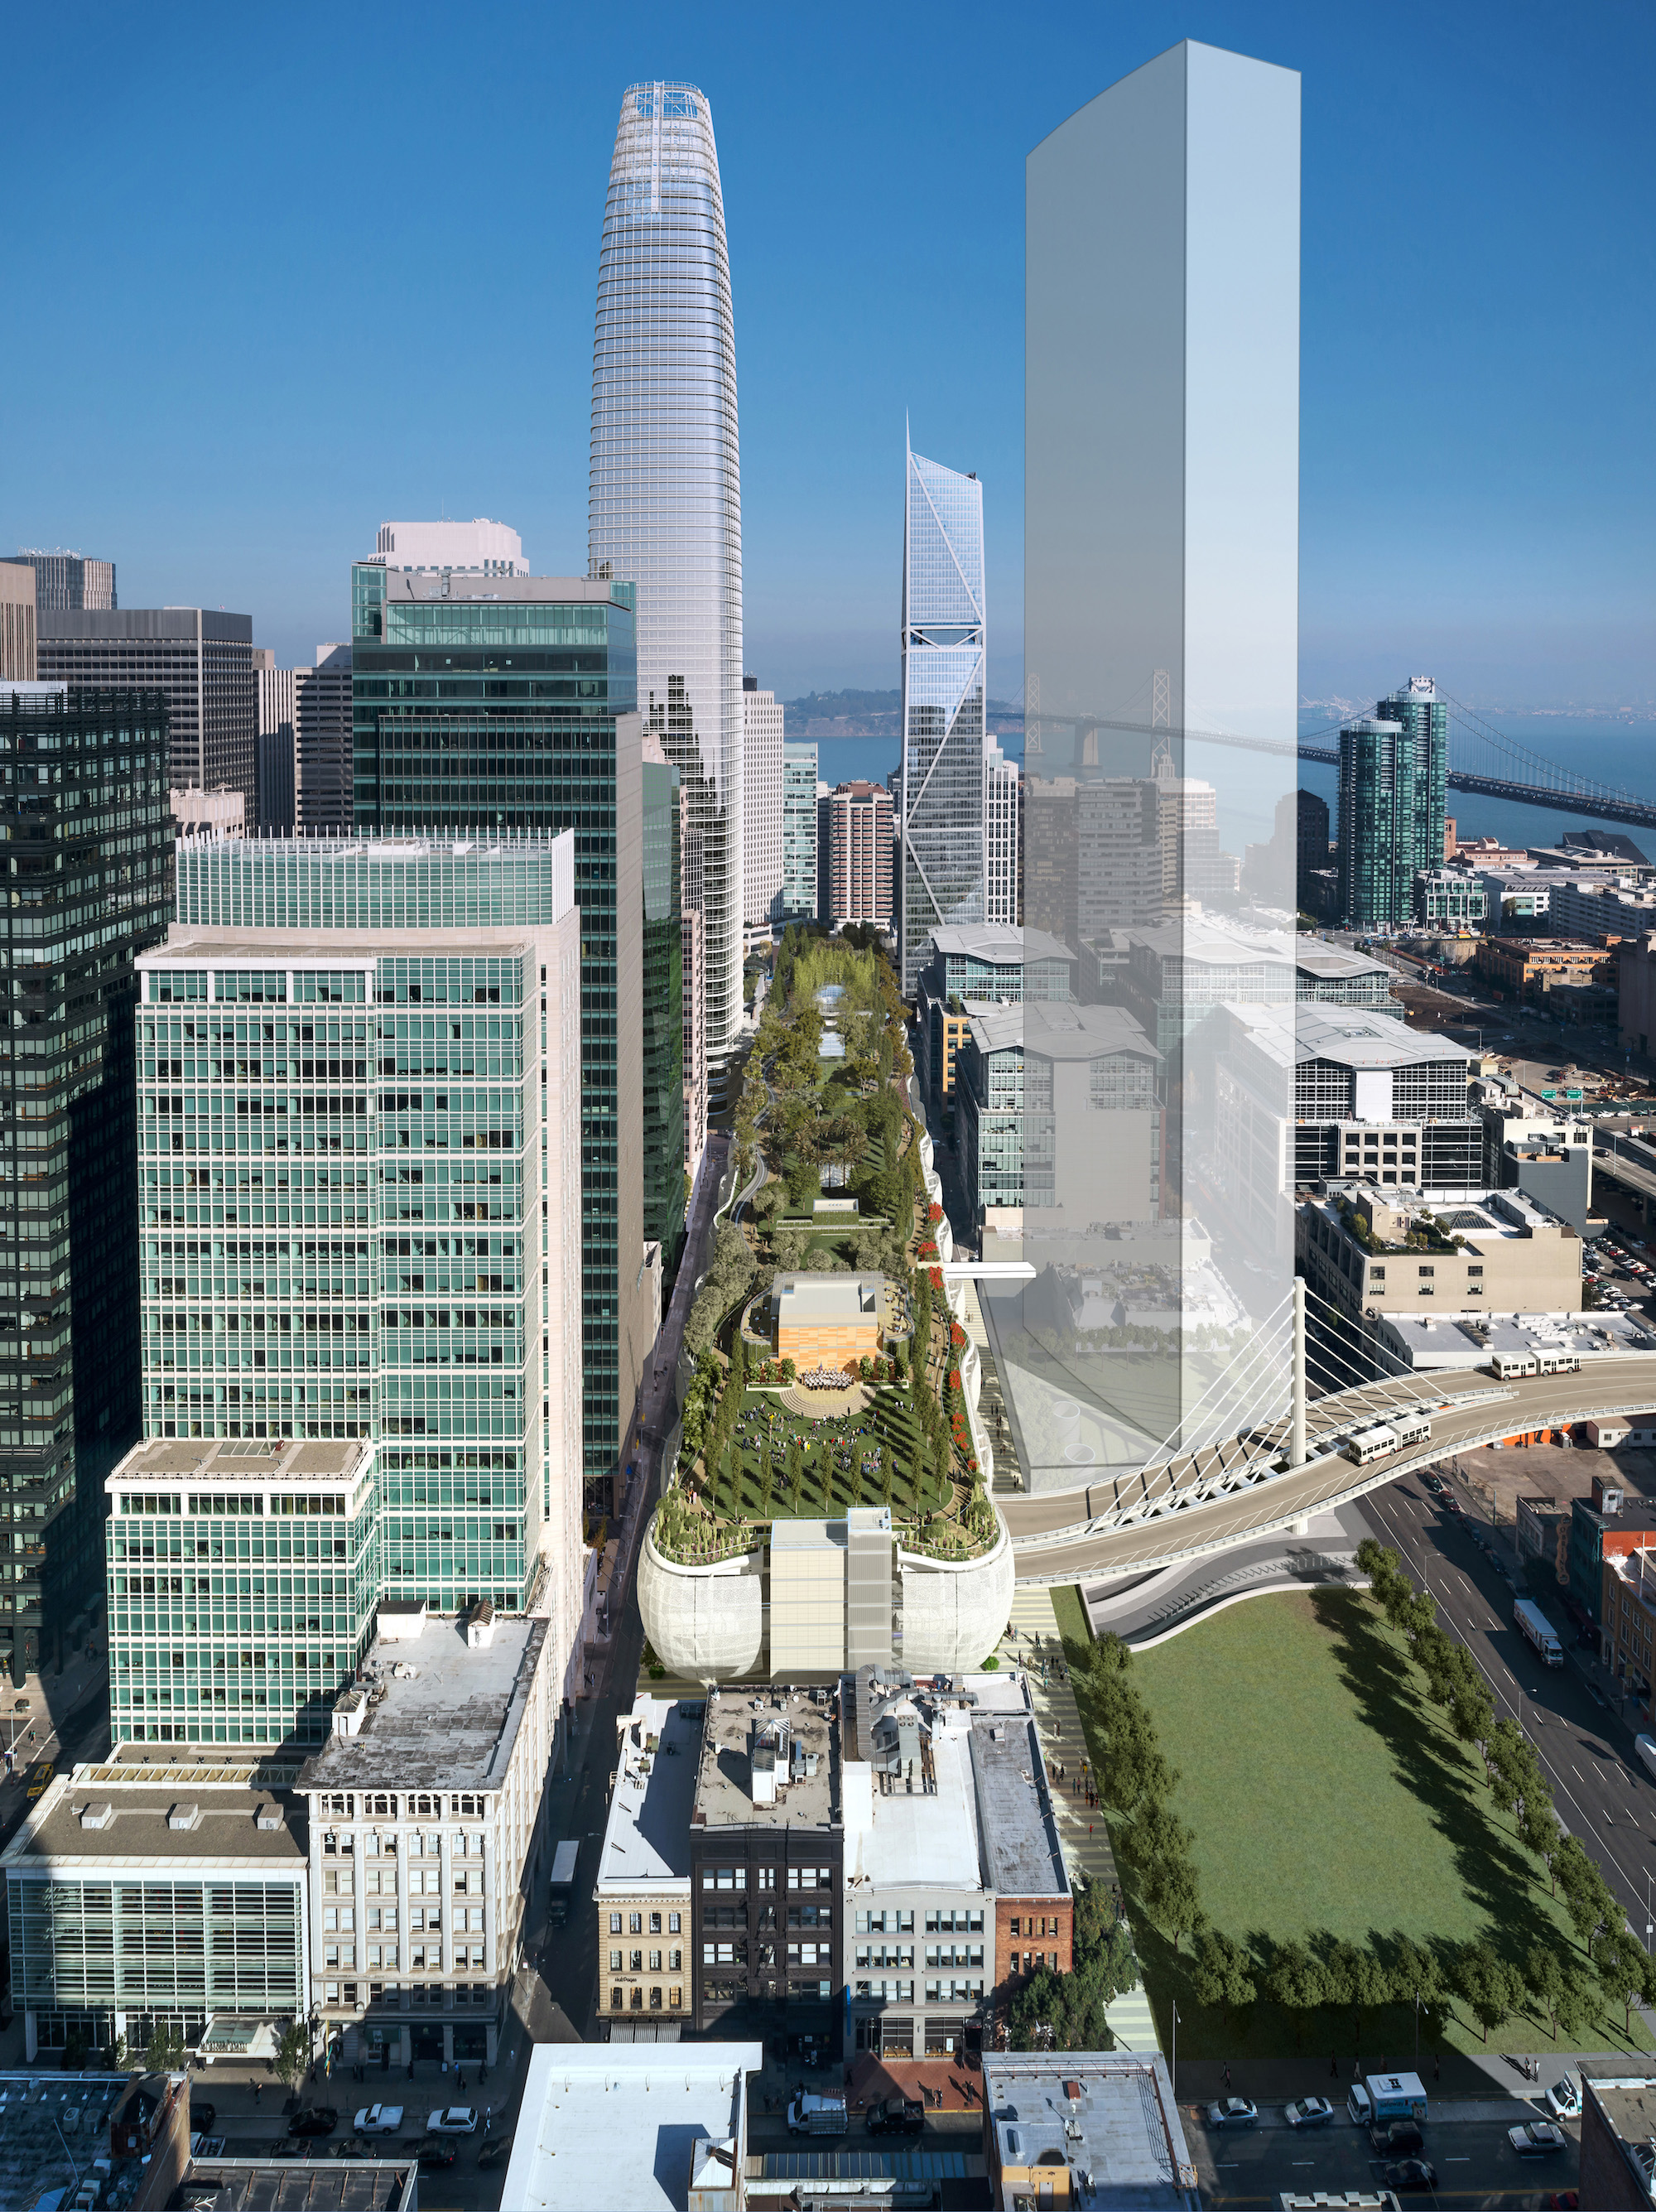 Rendering of the Transbay Transit Center